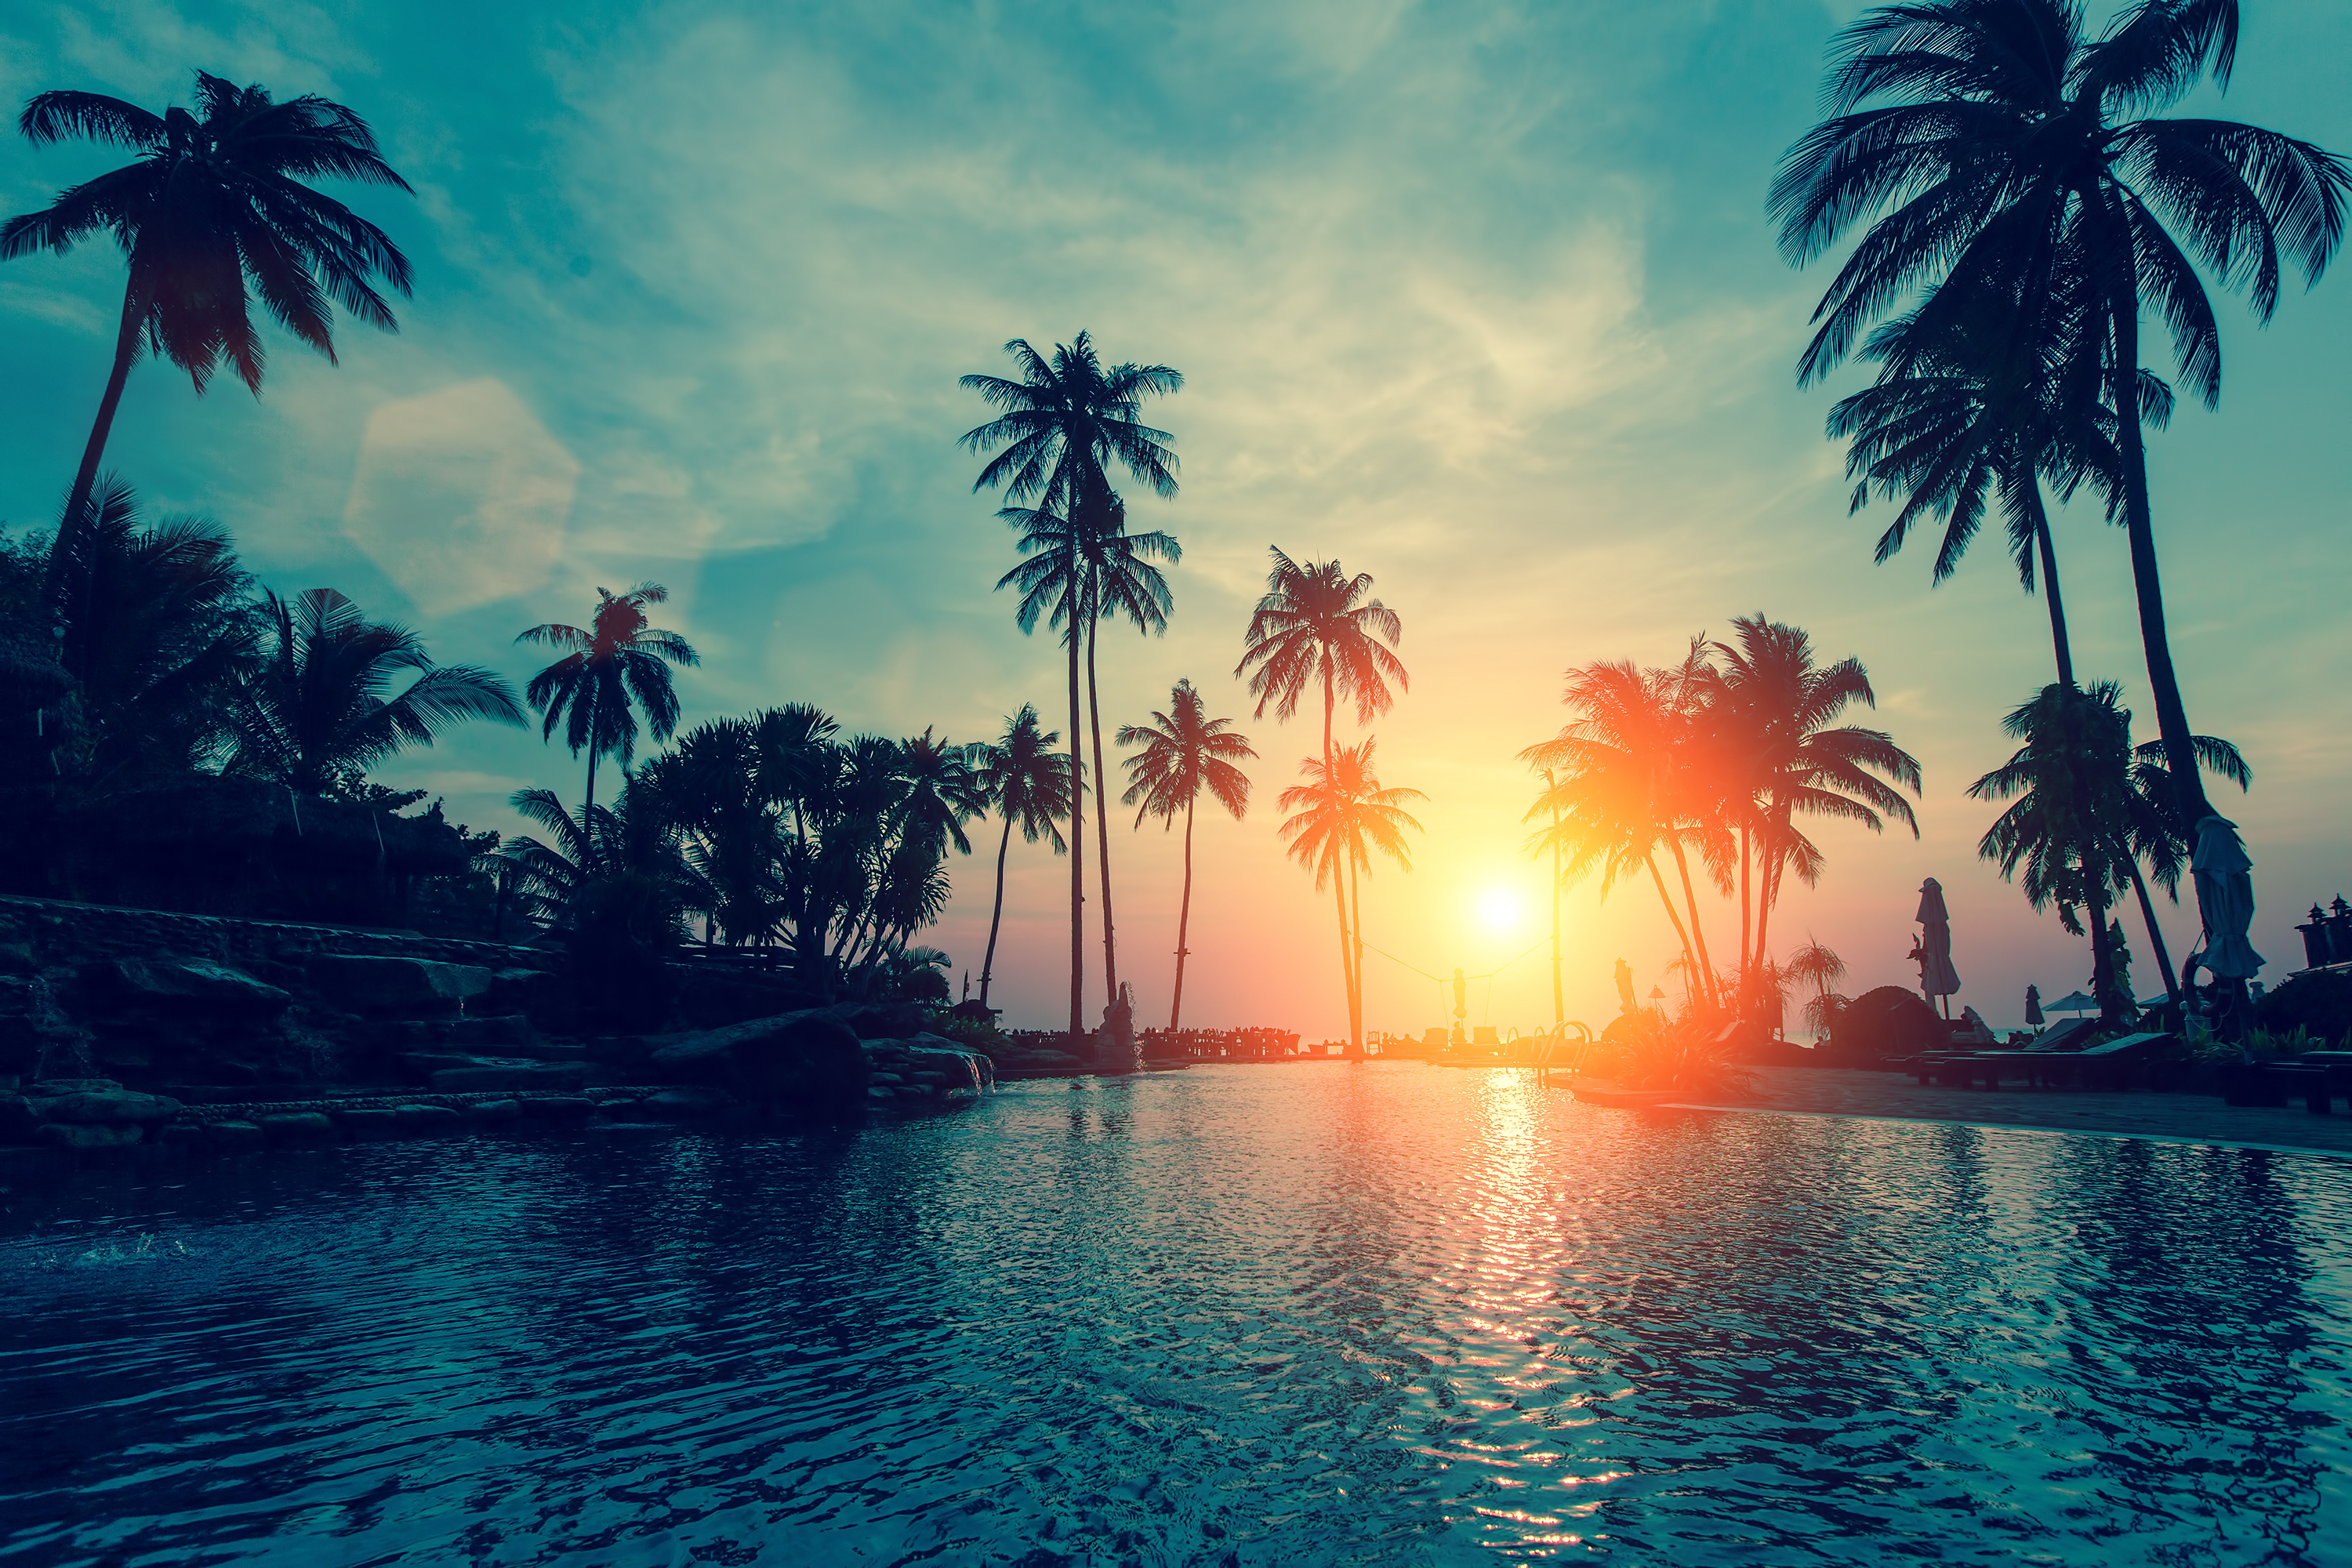 Wallpaper Sunset, Palm trees, Tropical beach, HD, Nature, #6500